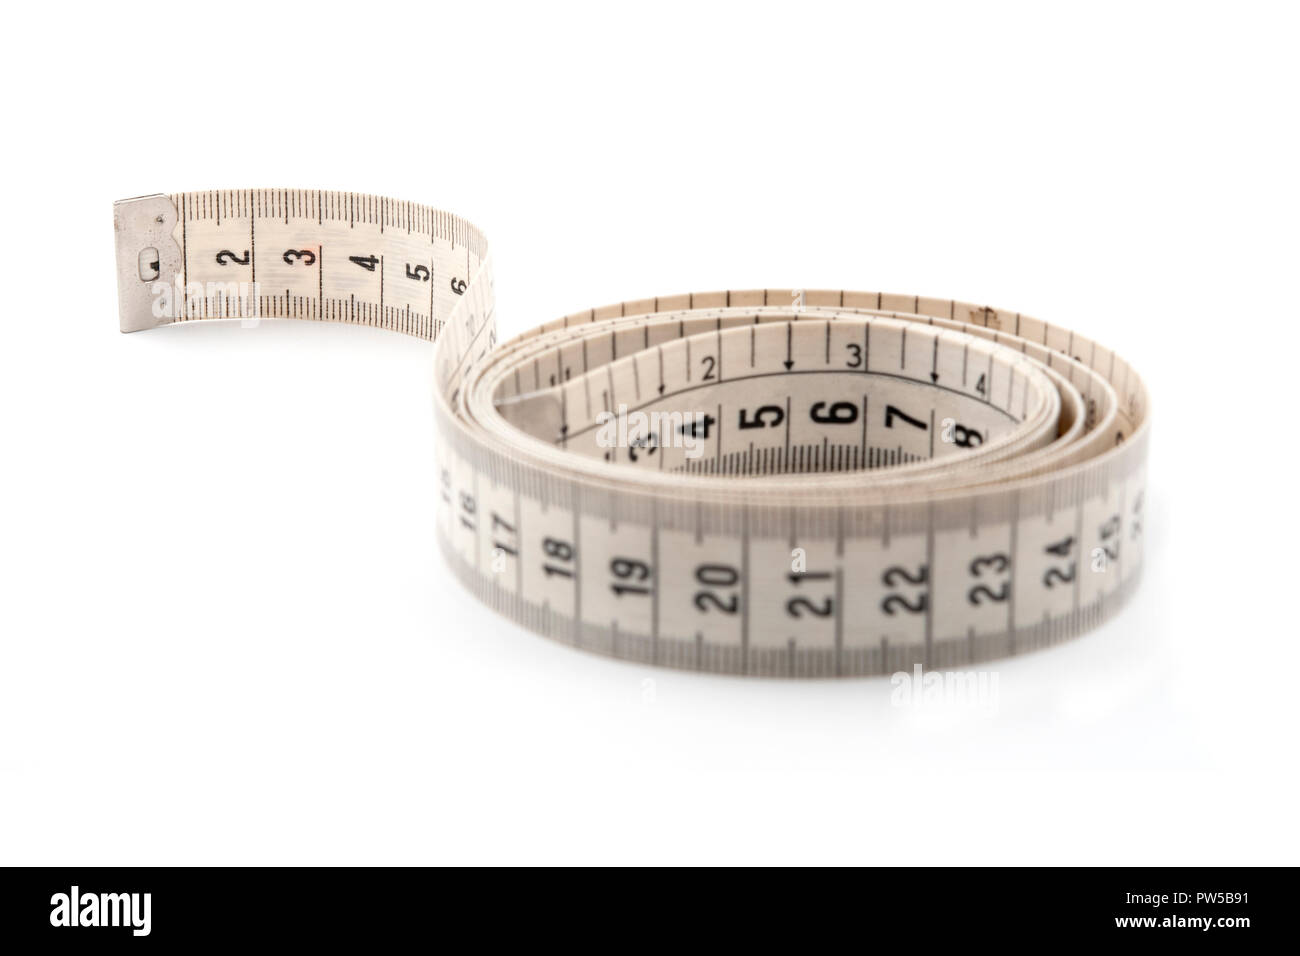 Cloth tape measure on a white backgroud - Stock Image